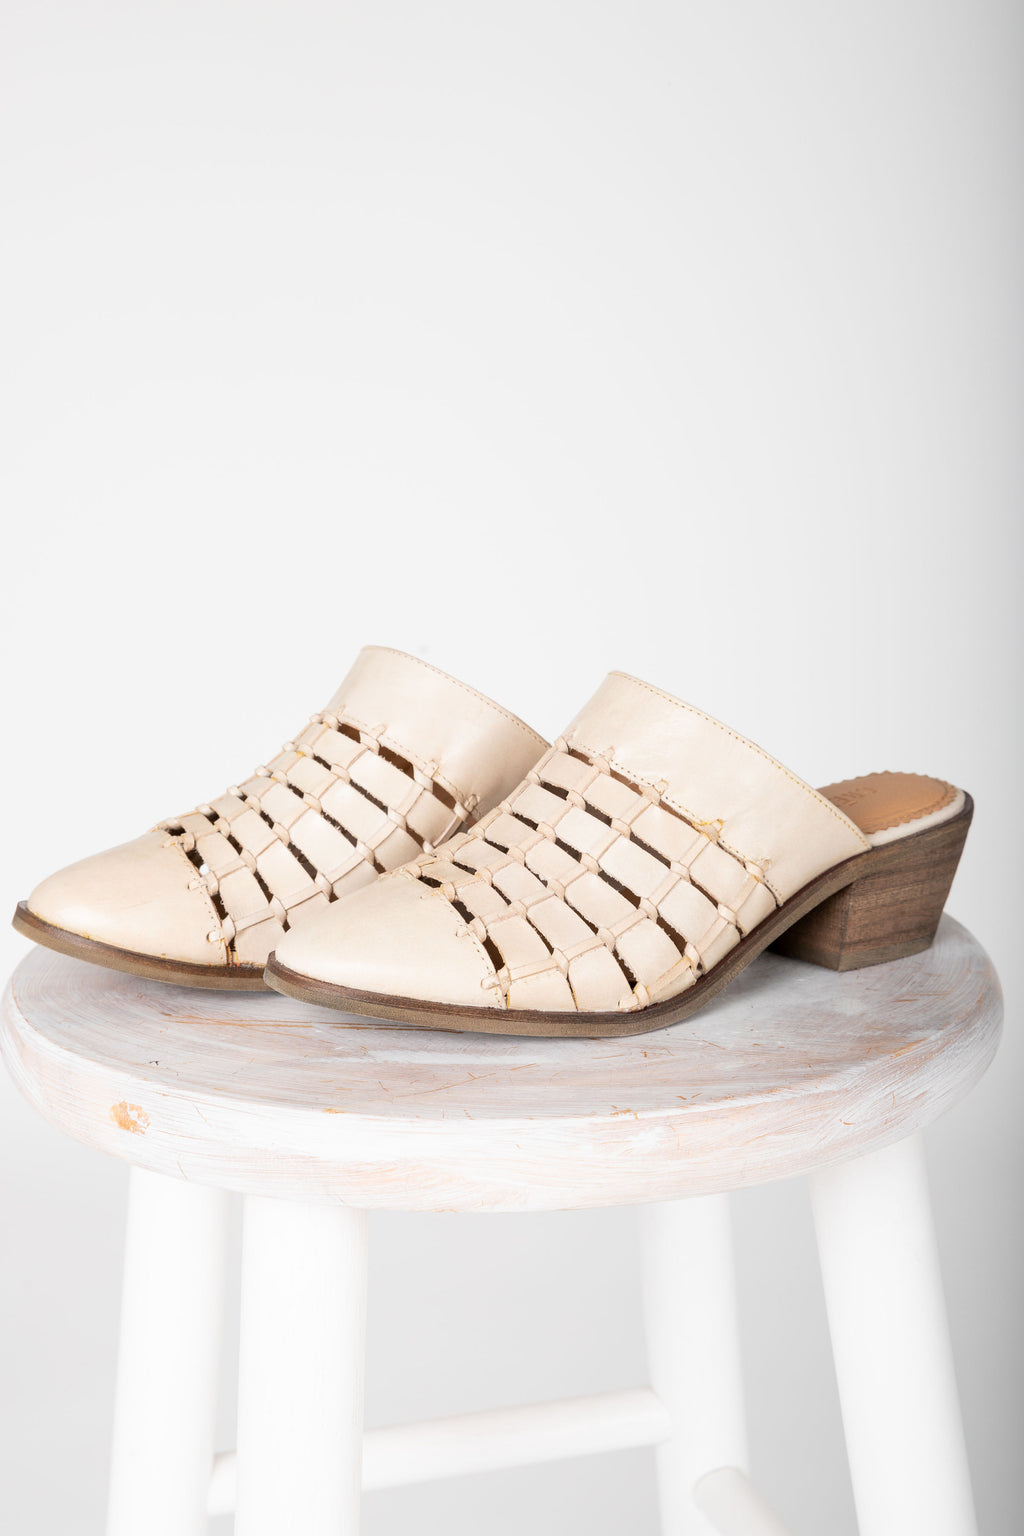 Crevo Footwear: Lavender Mule in Bone, studio shoot; side view